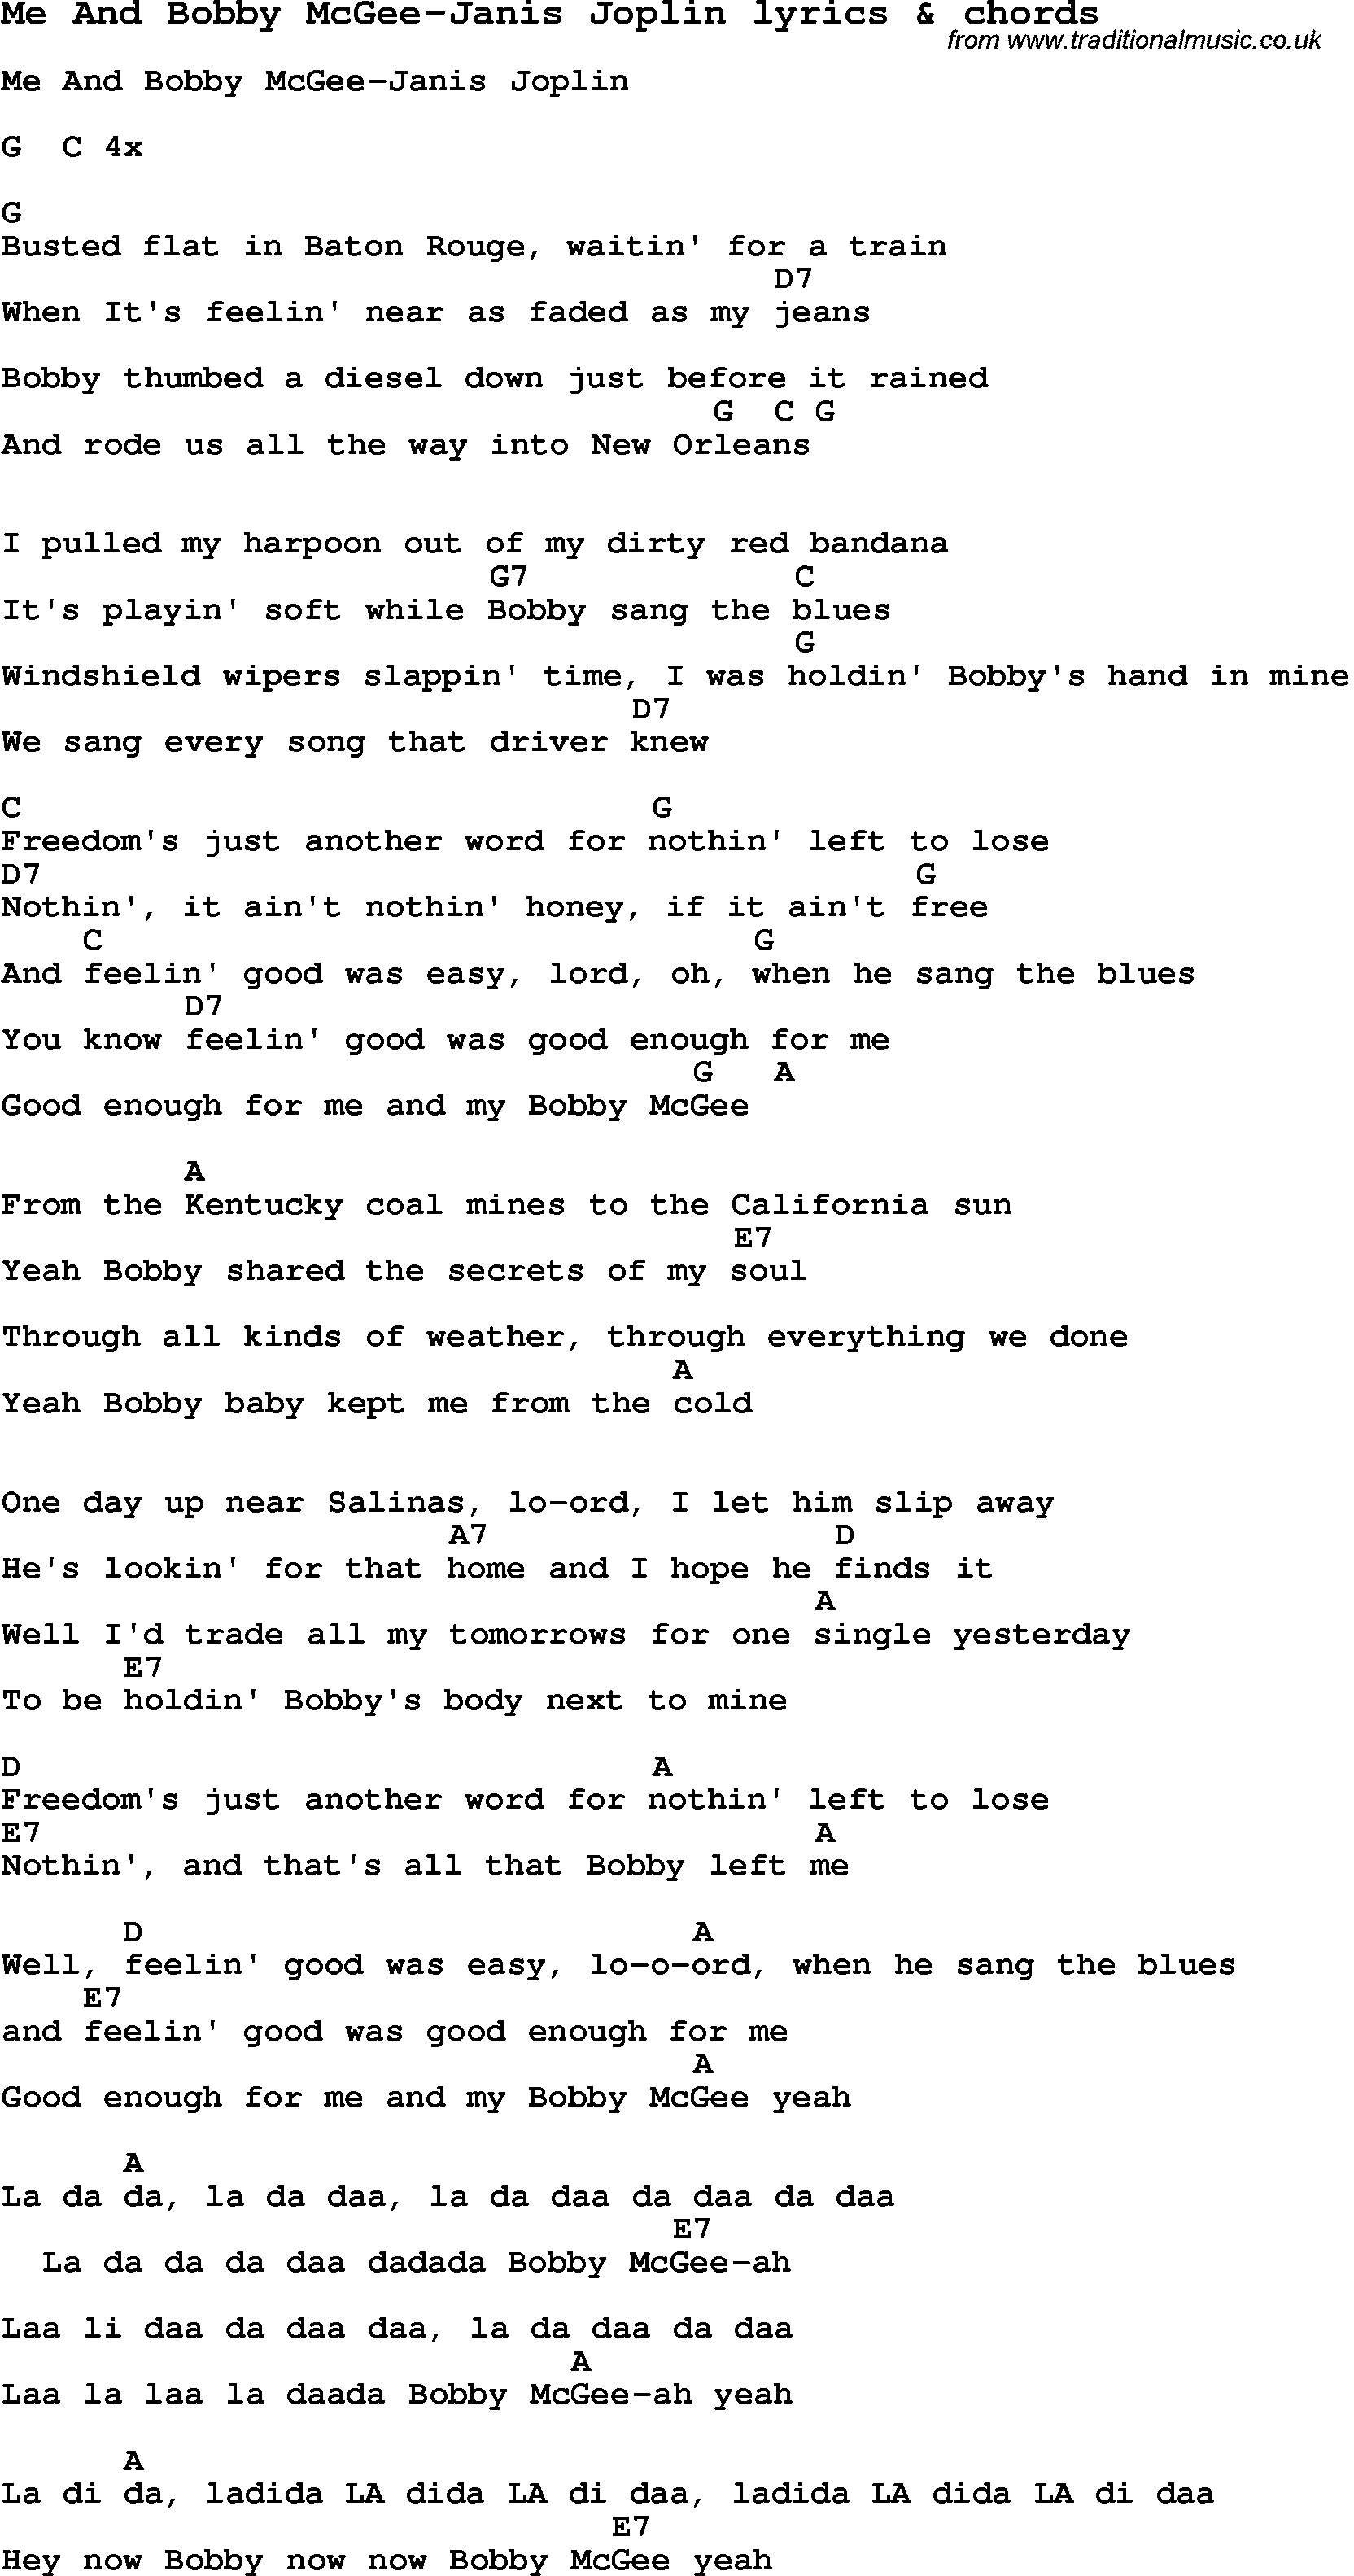 Love Song Lyrics forMe And Bobby McGee Janis Joplin with chords.